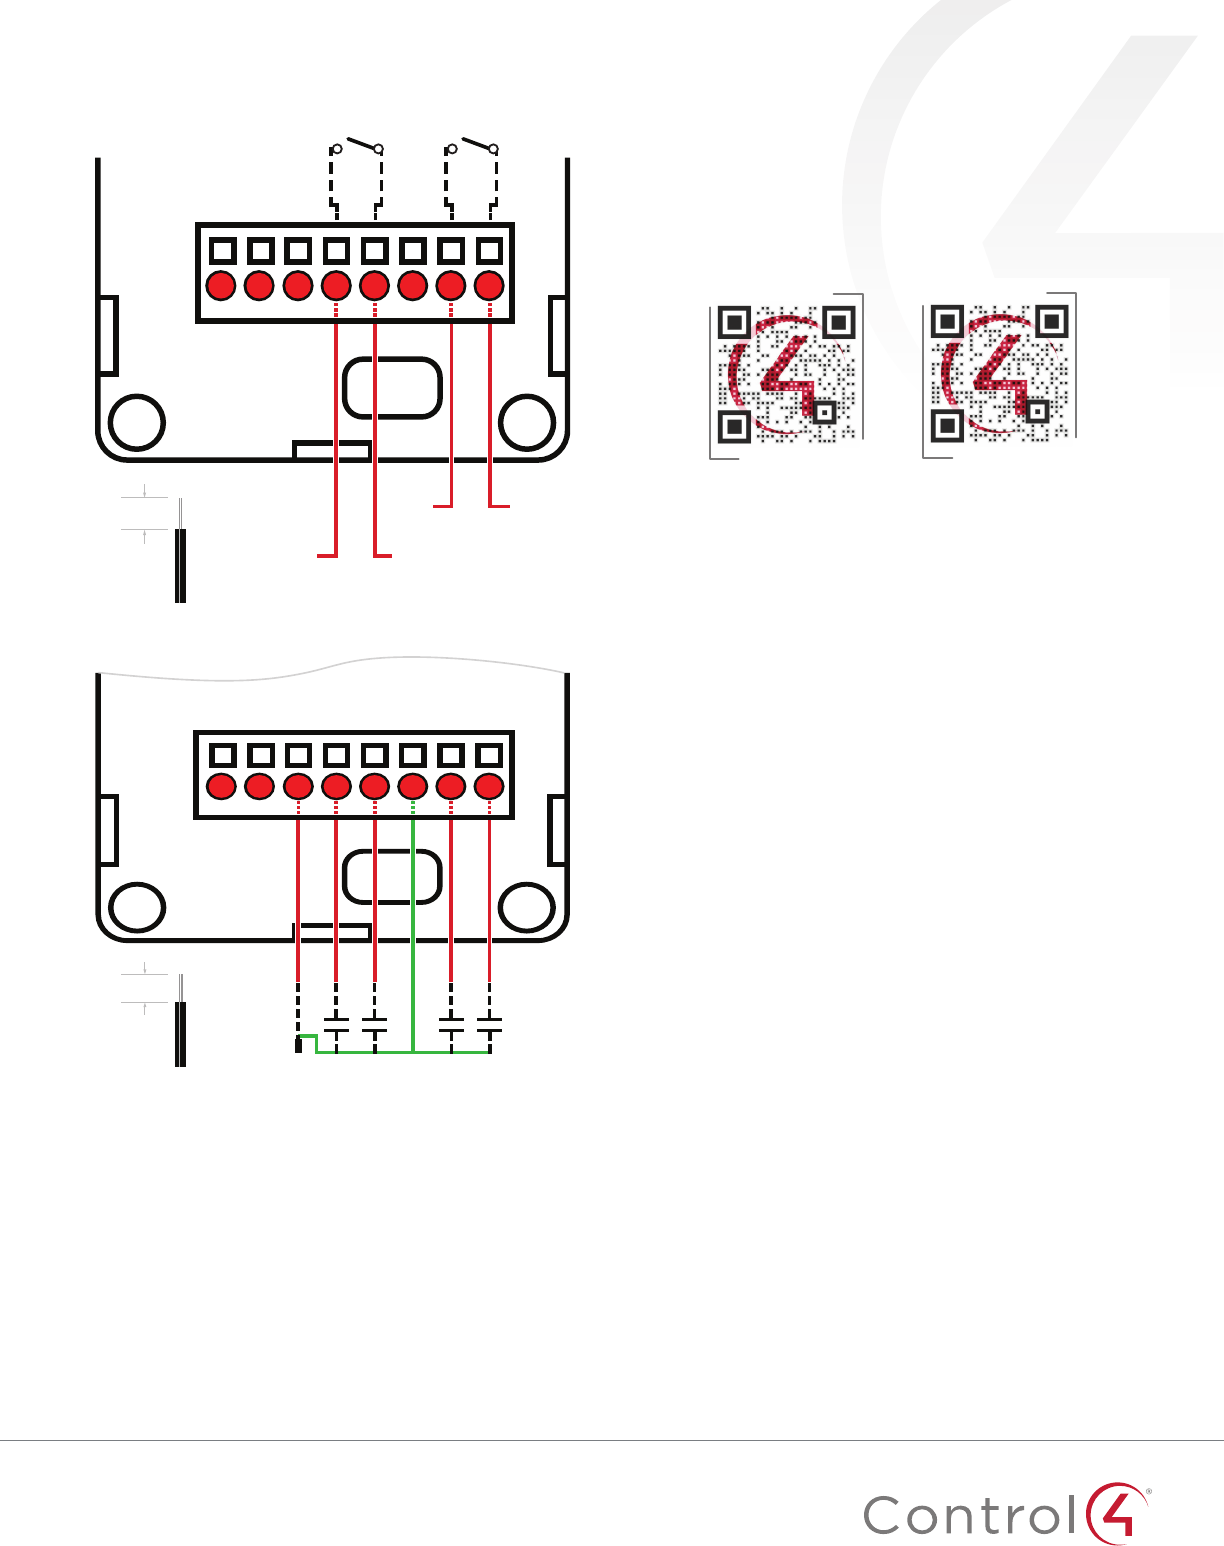 Excellent control4 wiring diagram photos electrical system block control4 garage door wiring intended pioneer deh p4400 wiring diagram cheapraybanclubmaster Image collections